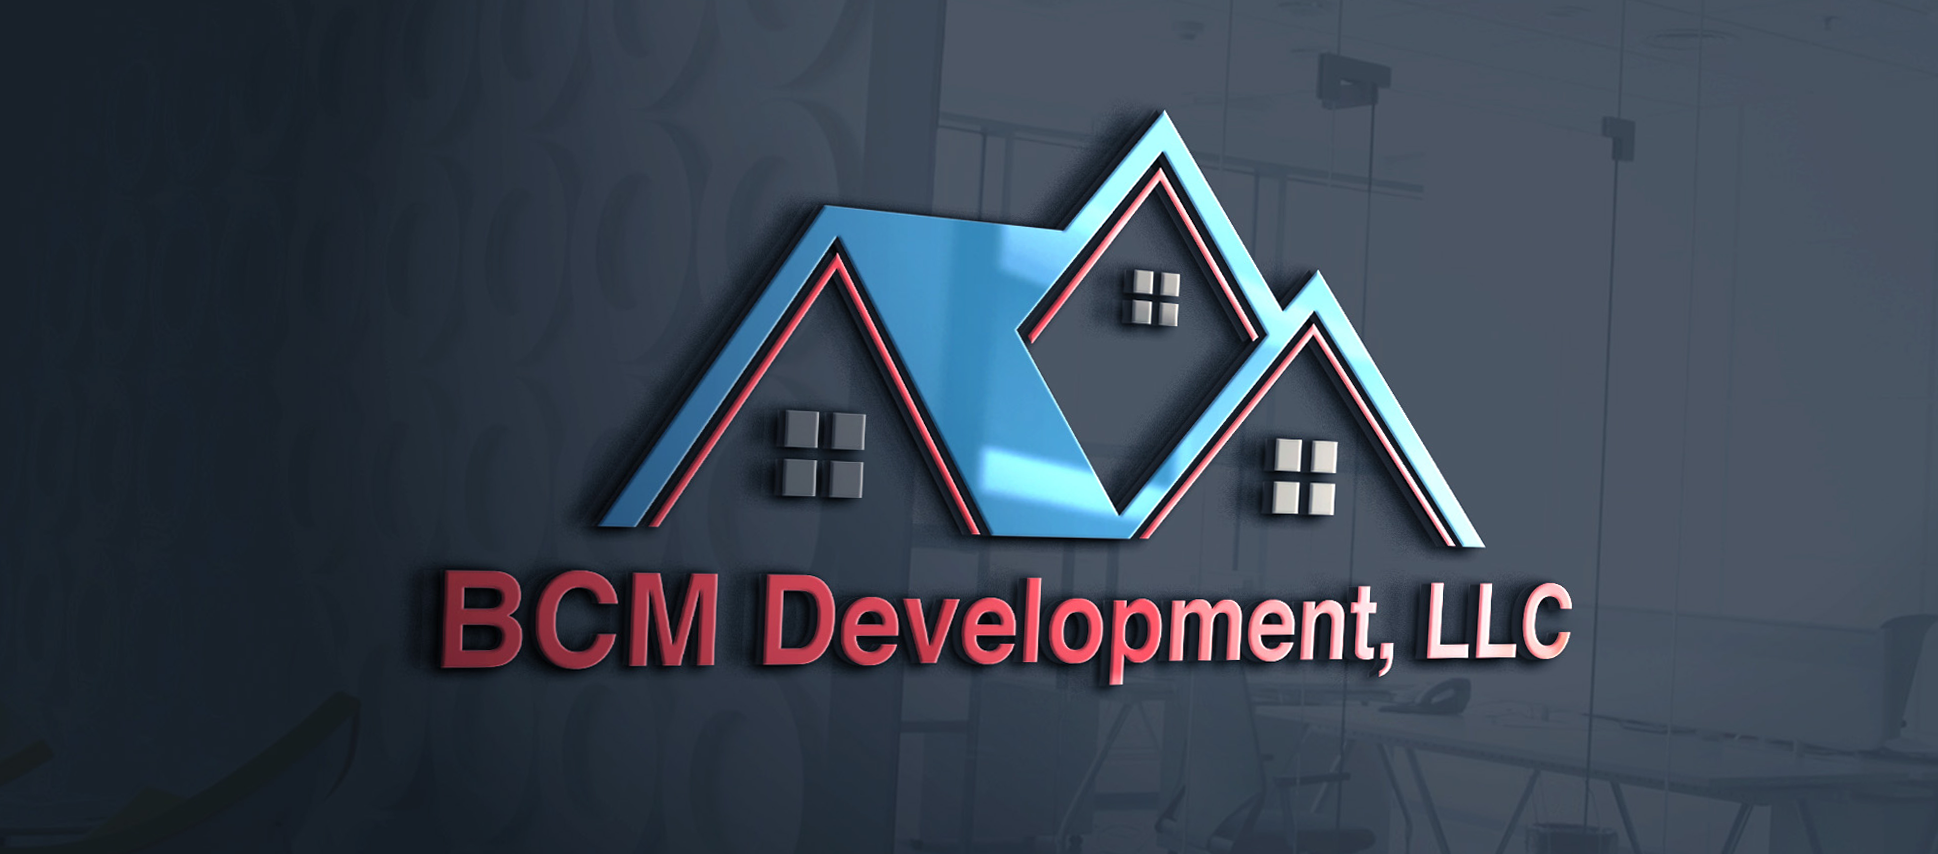 BCM Development, LLC